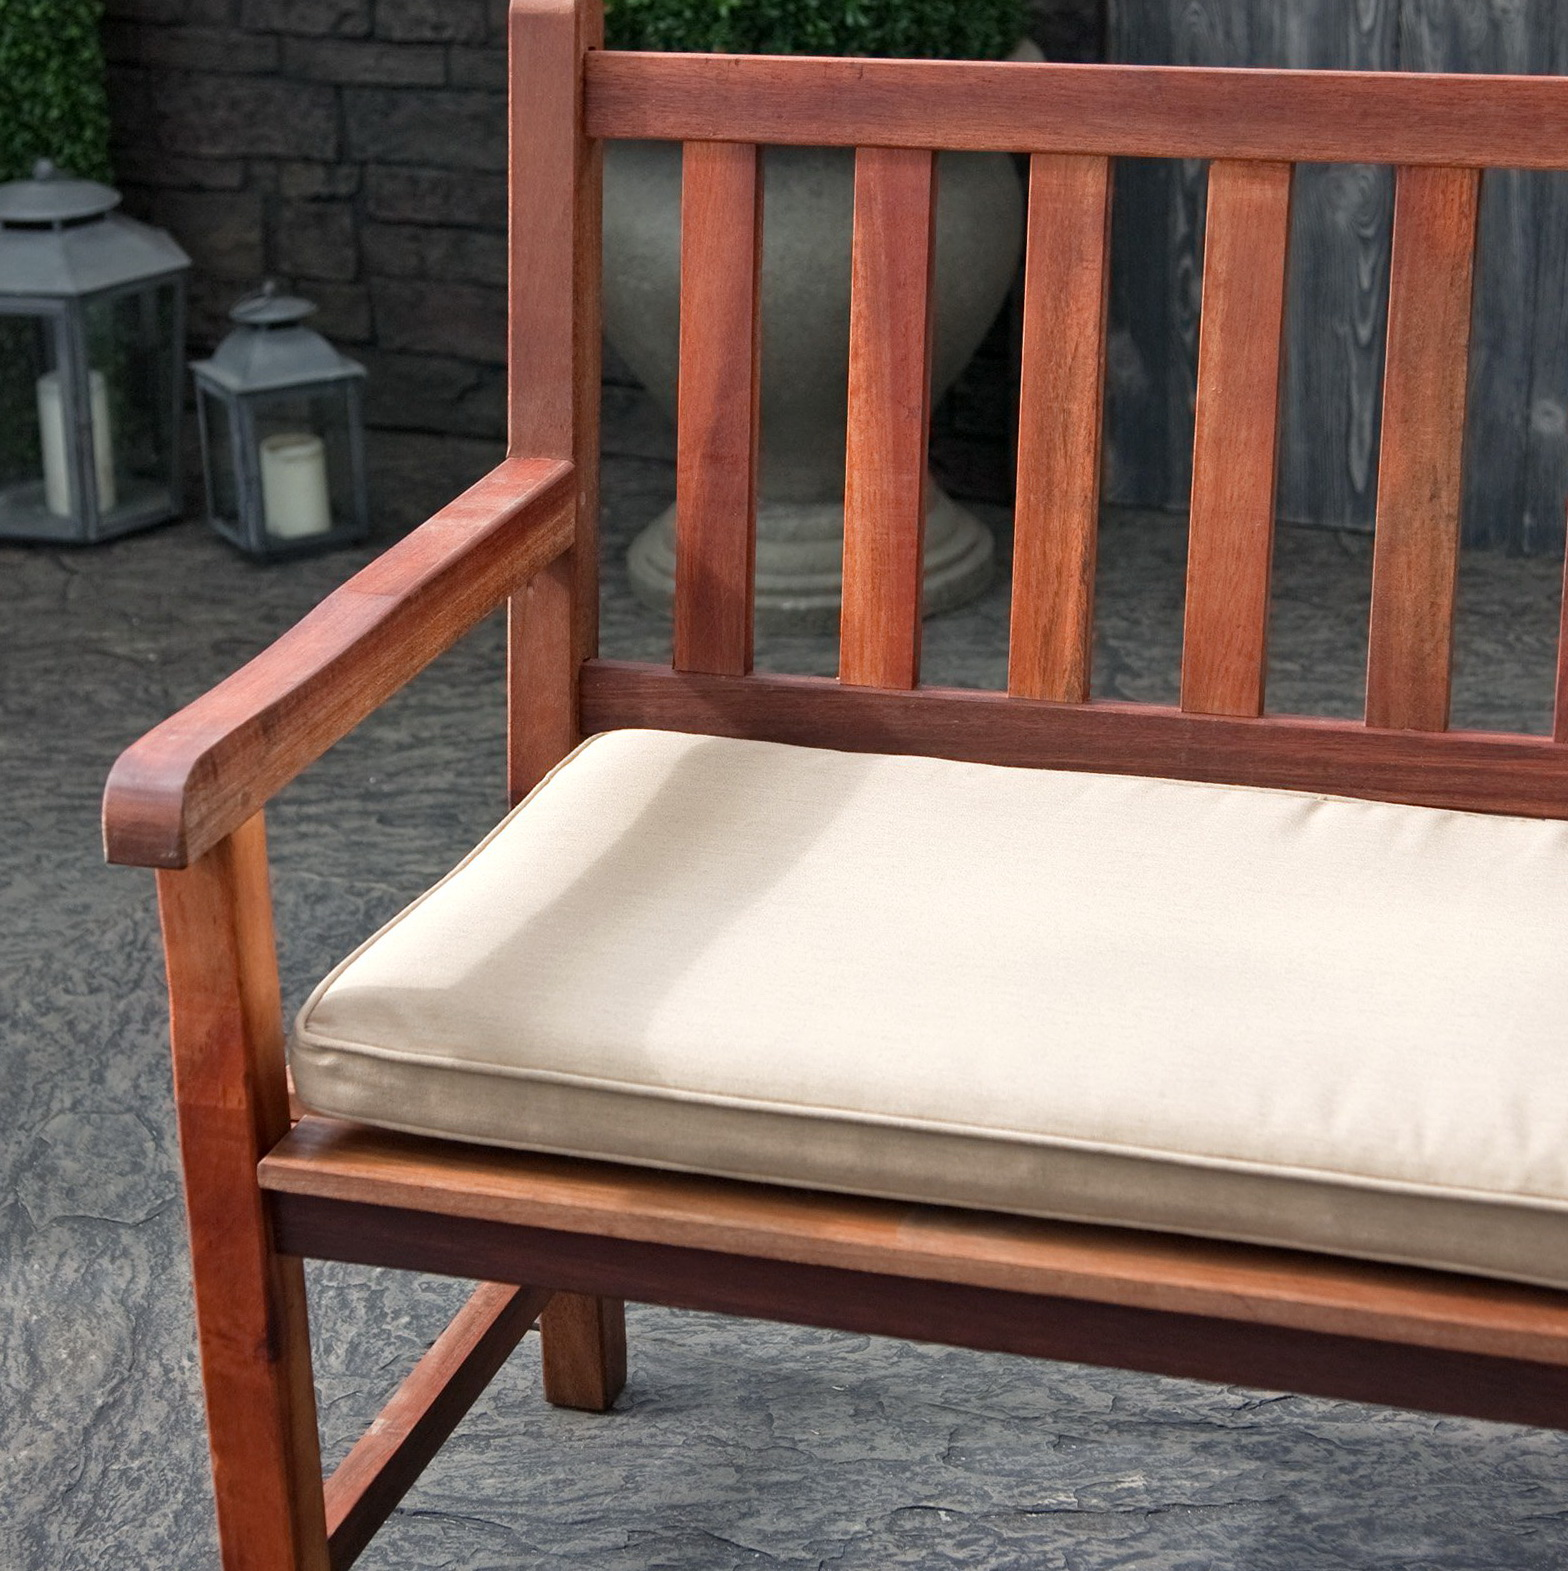 Cushion For Bench Swing